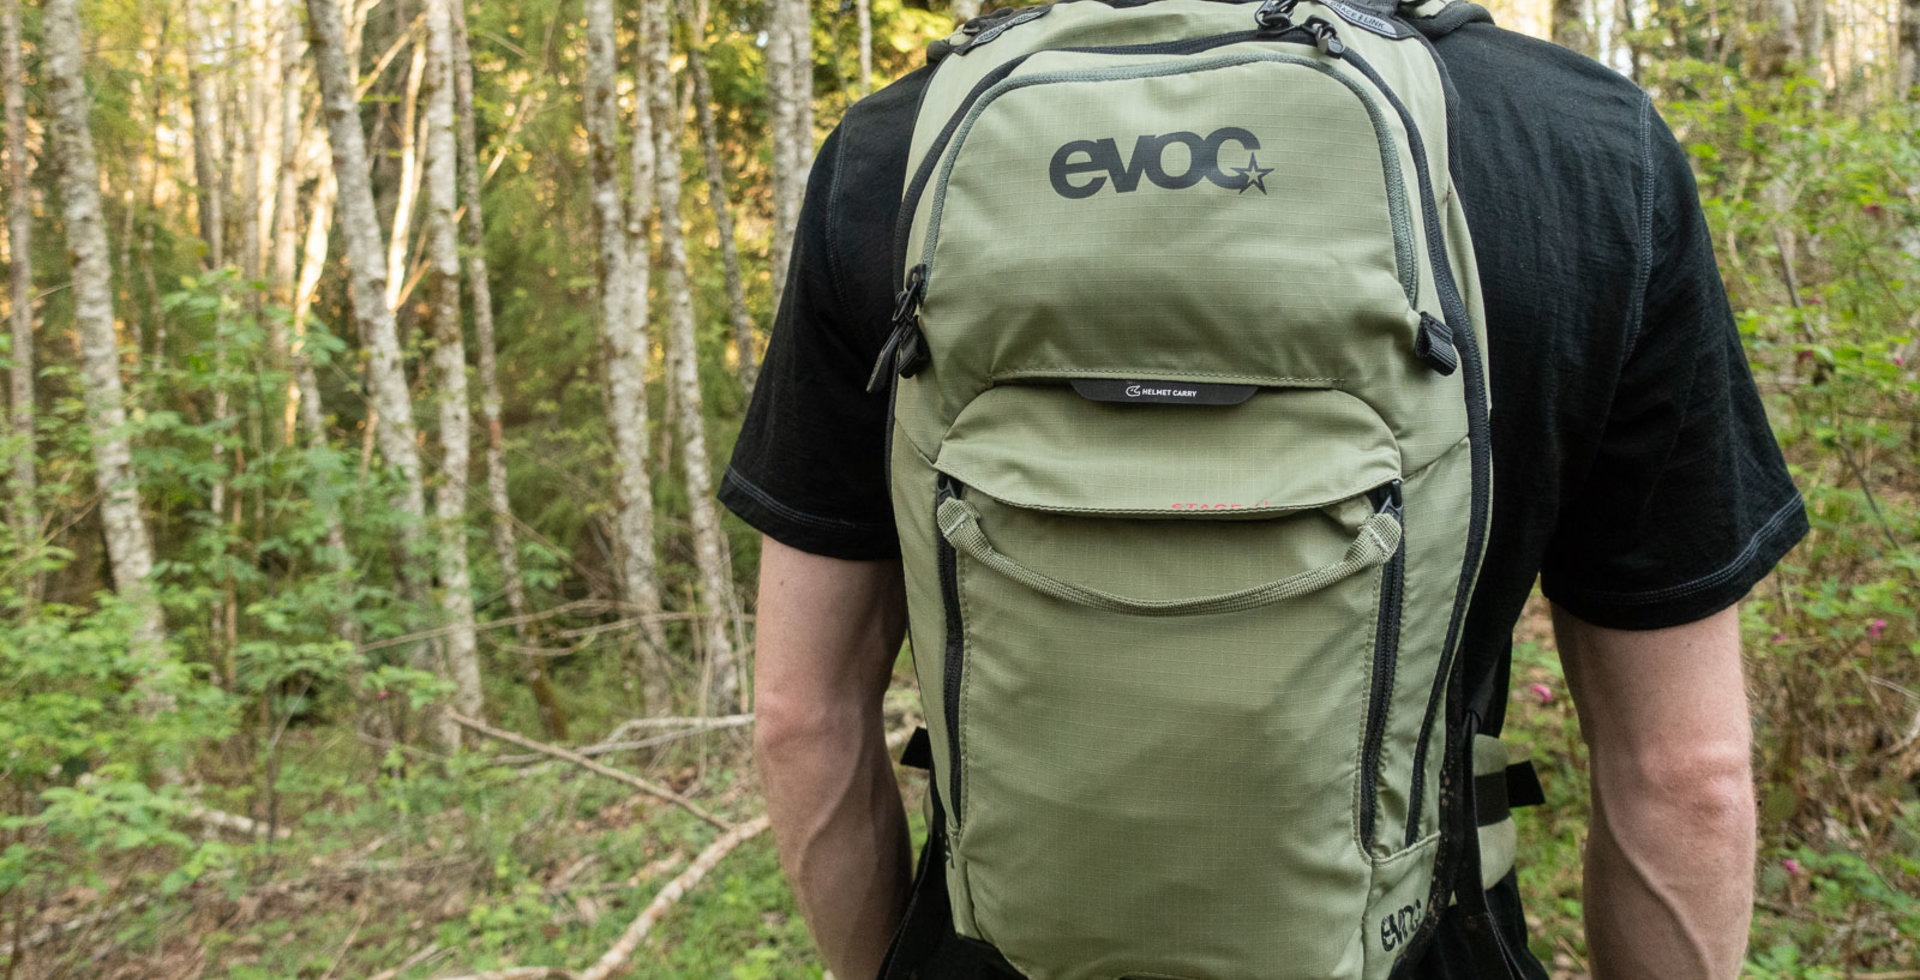 It's rare to find a riding bag that looks as inconspicuous as the EVOC Stage.